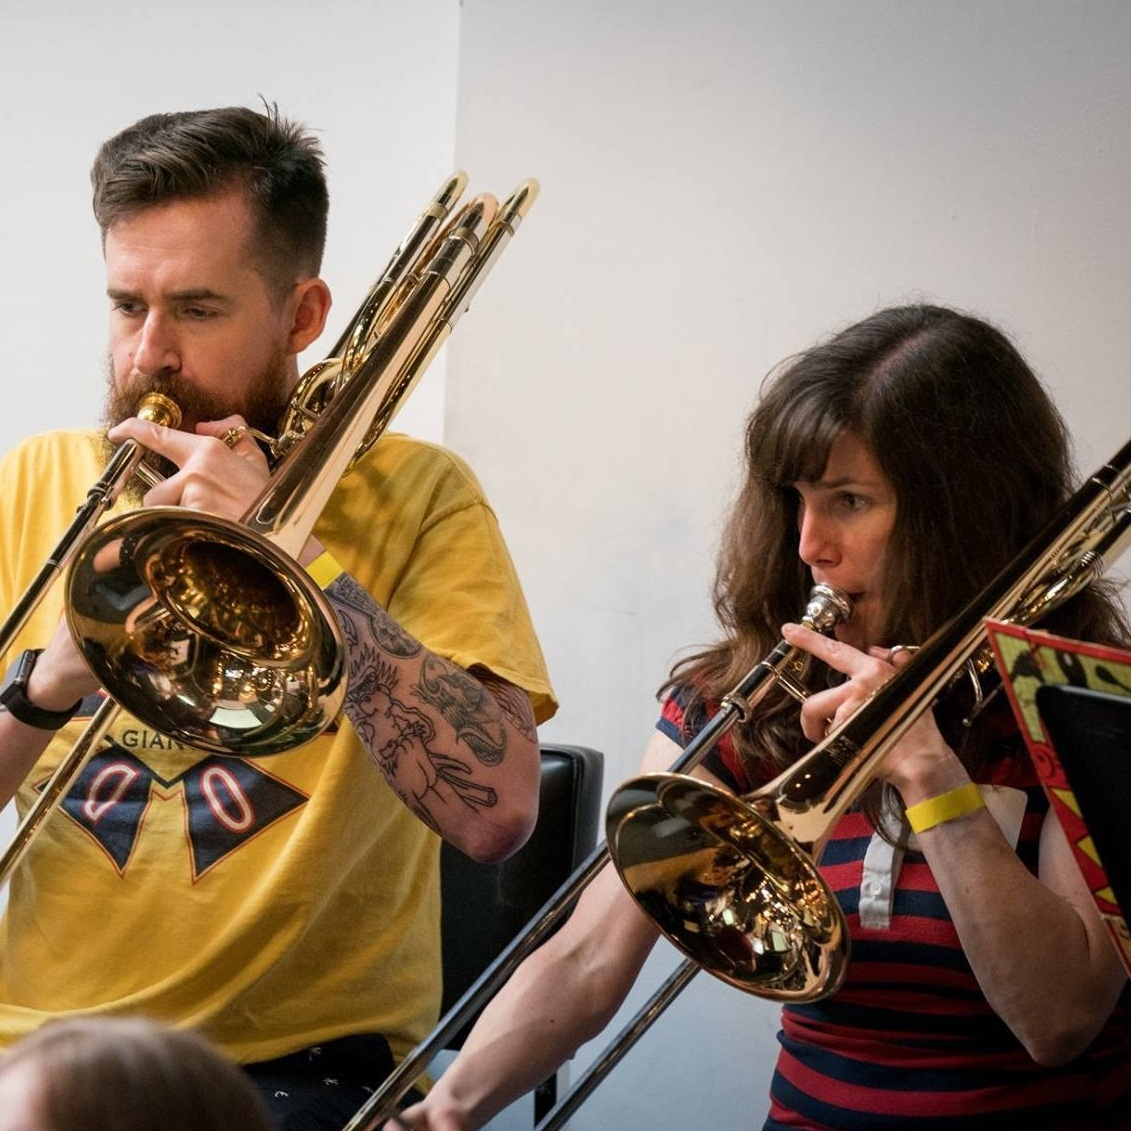 TROMBONES, EUPHONIUMS, TUBAS:    Bonnie & J. Maddox     Bonnie and J. first met in their community college jazz band and later graduated from Pacific Conservatory of Music. Their first Awesöme Orchestra experience was playing in  UnderCover Presents: A Tribute to Green Day's Dookie.  It's been a fantastic voyage from selling koozies and t-shirts at the welcome table to recording at Fantasy Studios and Zoo Labs and performing with the AÖ Big Band for Prom 2019! Outside of AÖ, Bonnie and J. are music teachers and perform with a variety of musical groups.